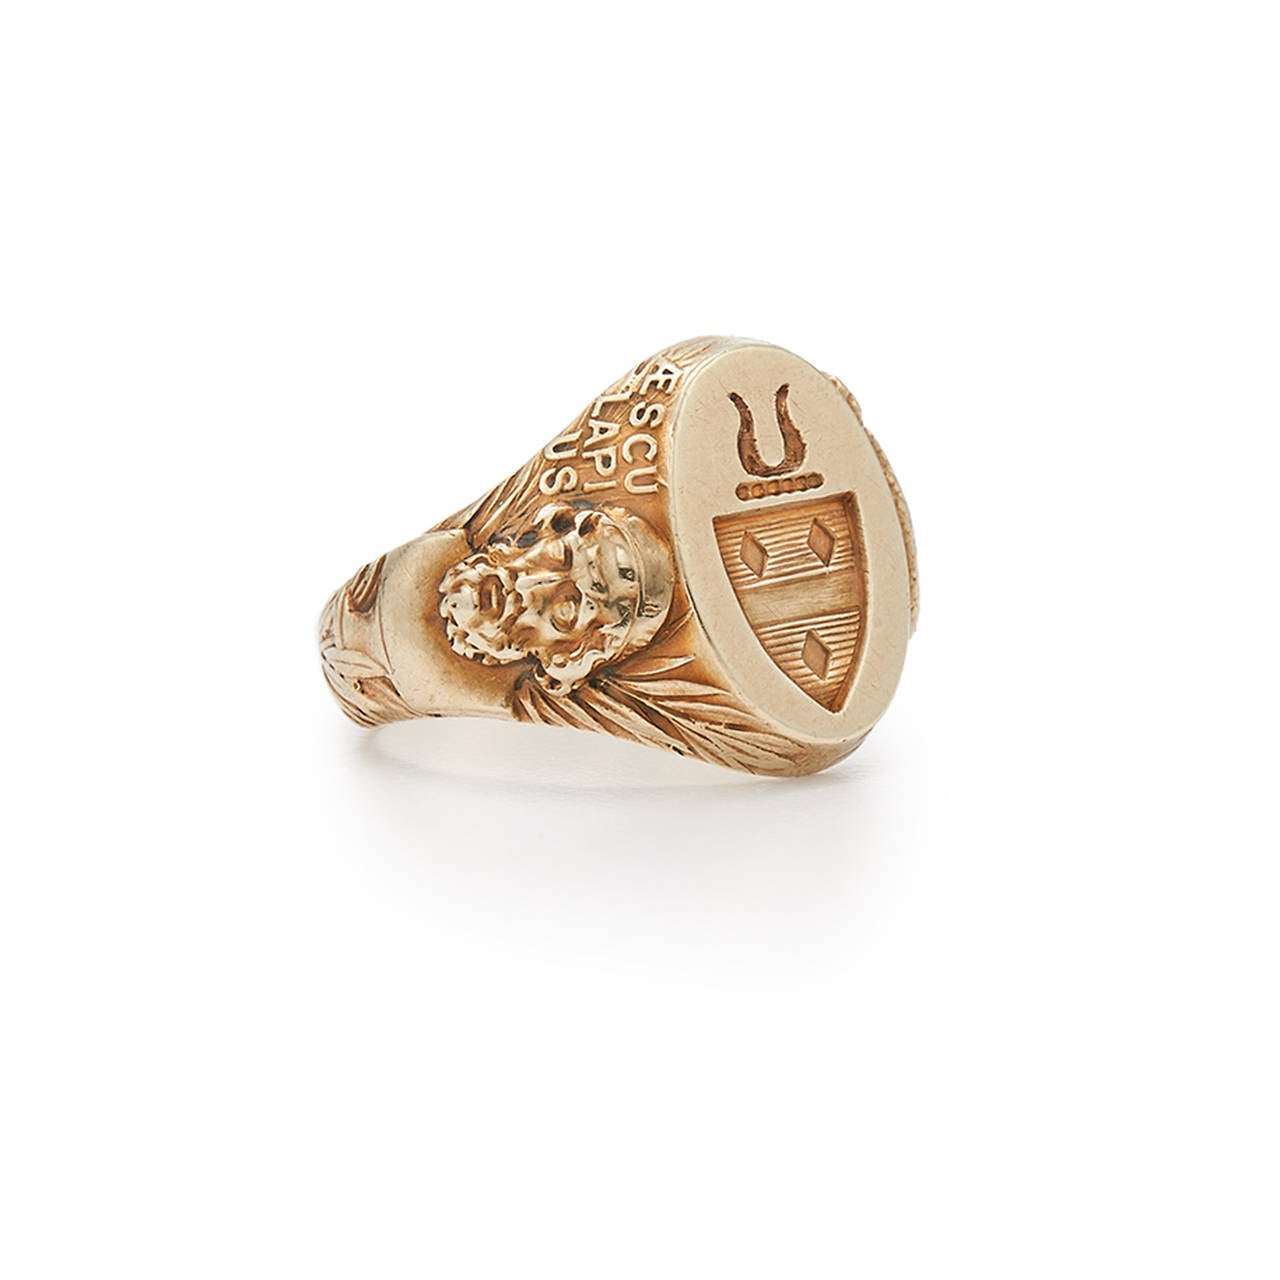 1900s Tiffany & Co. Engraved Gold Signet Ring 2